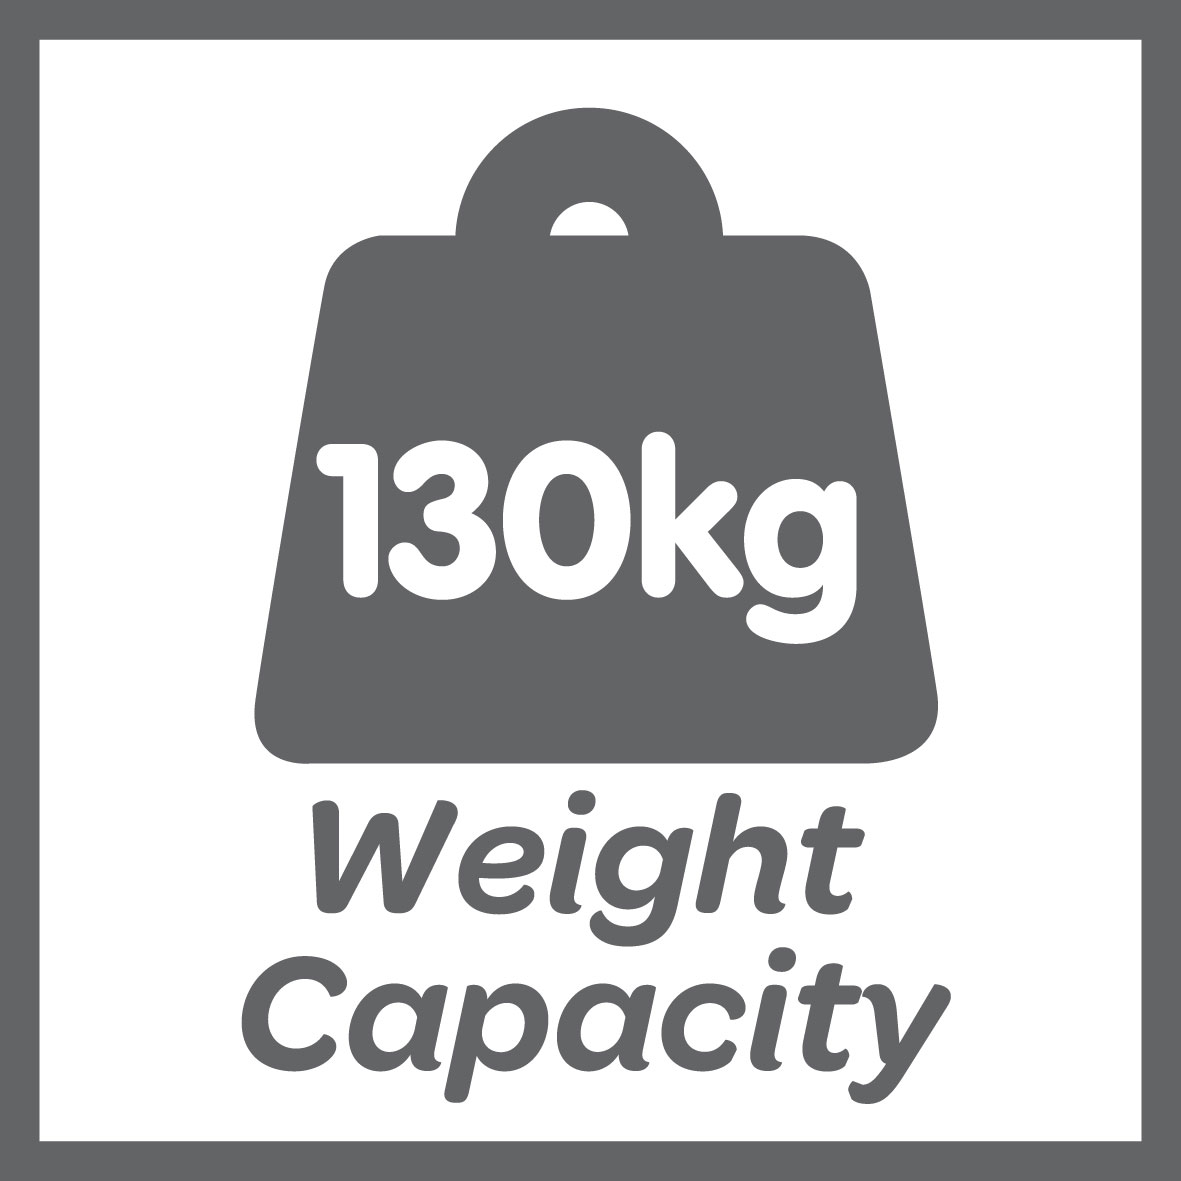 This product has a 130kg weight limit